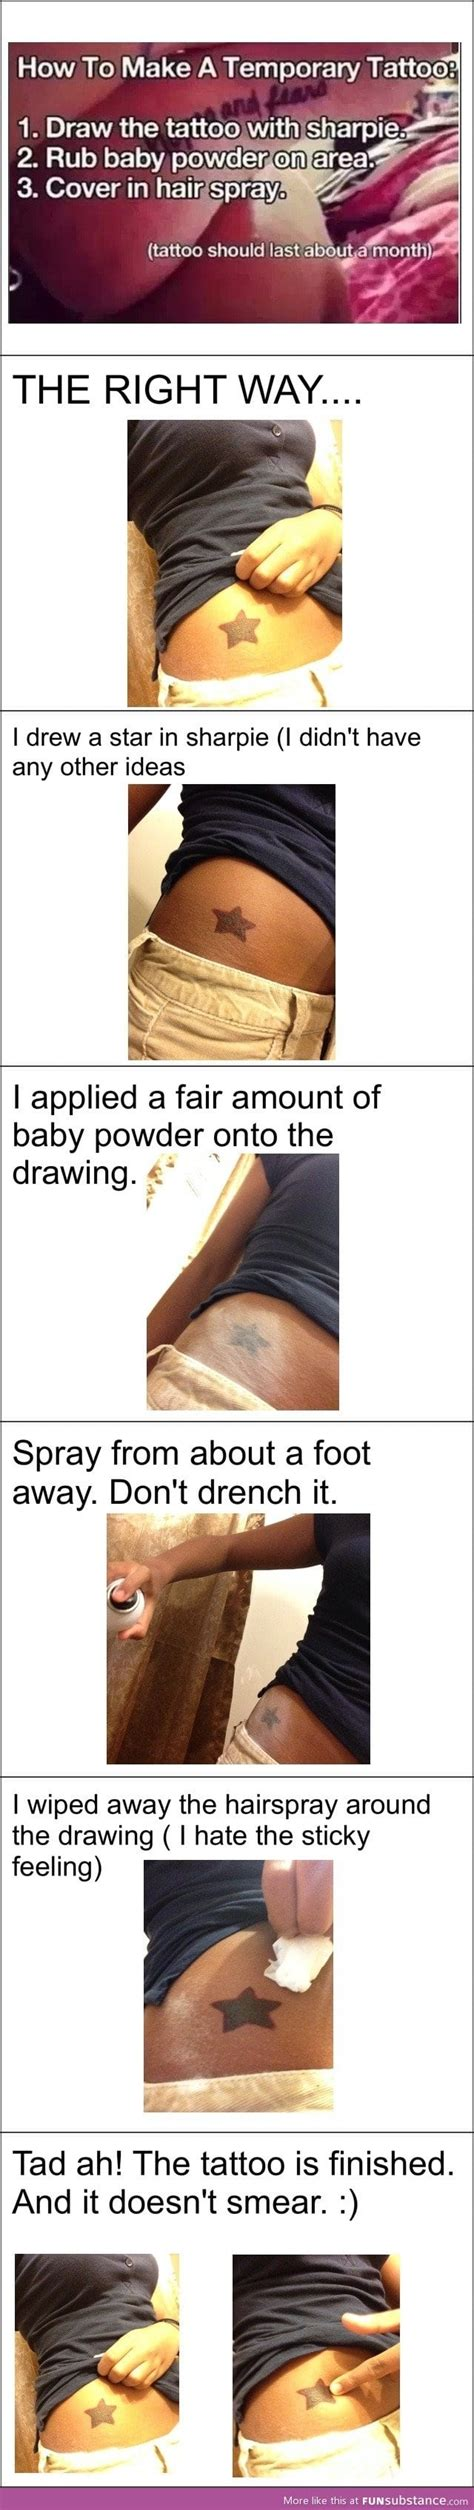 how to make sharpie tattoos last make a sharpie that lasts a month funsubstance